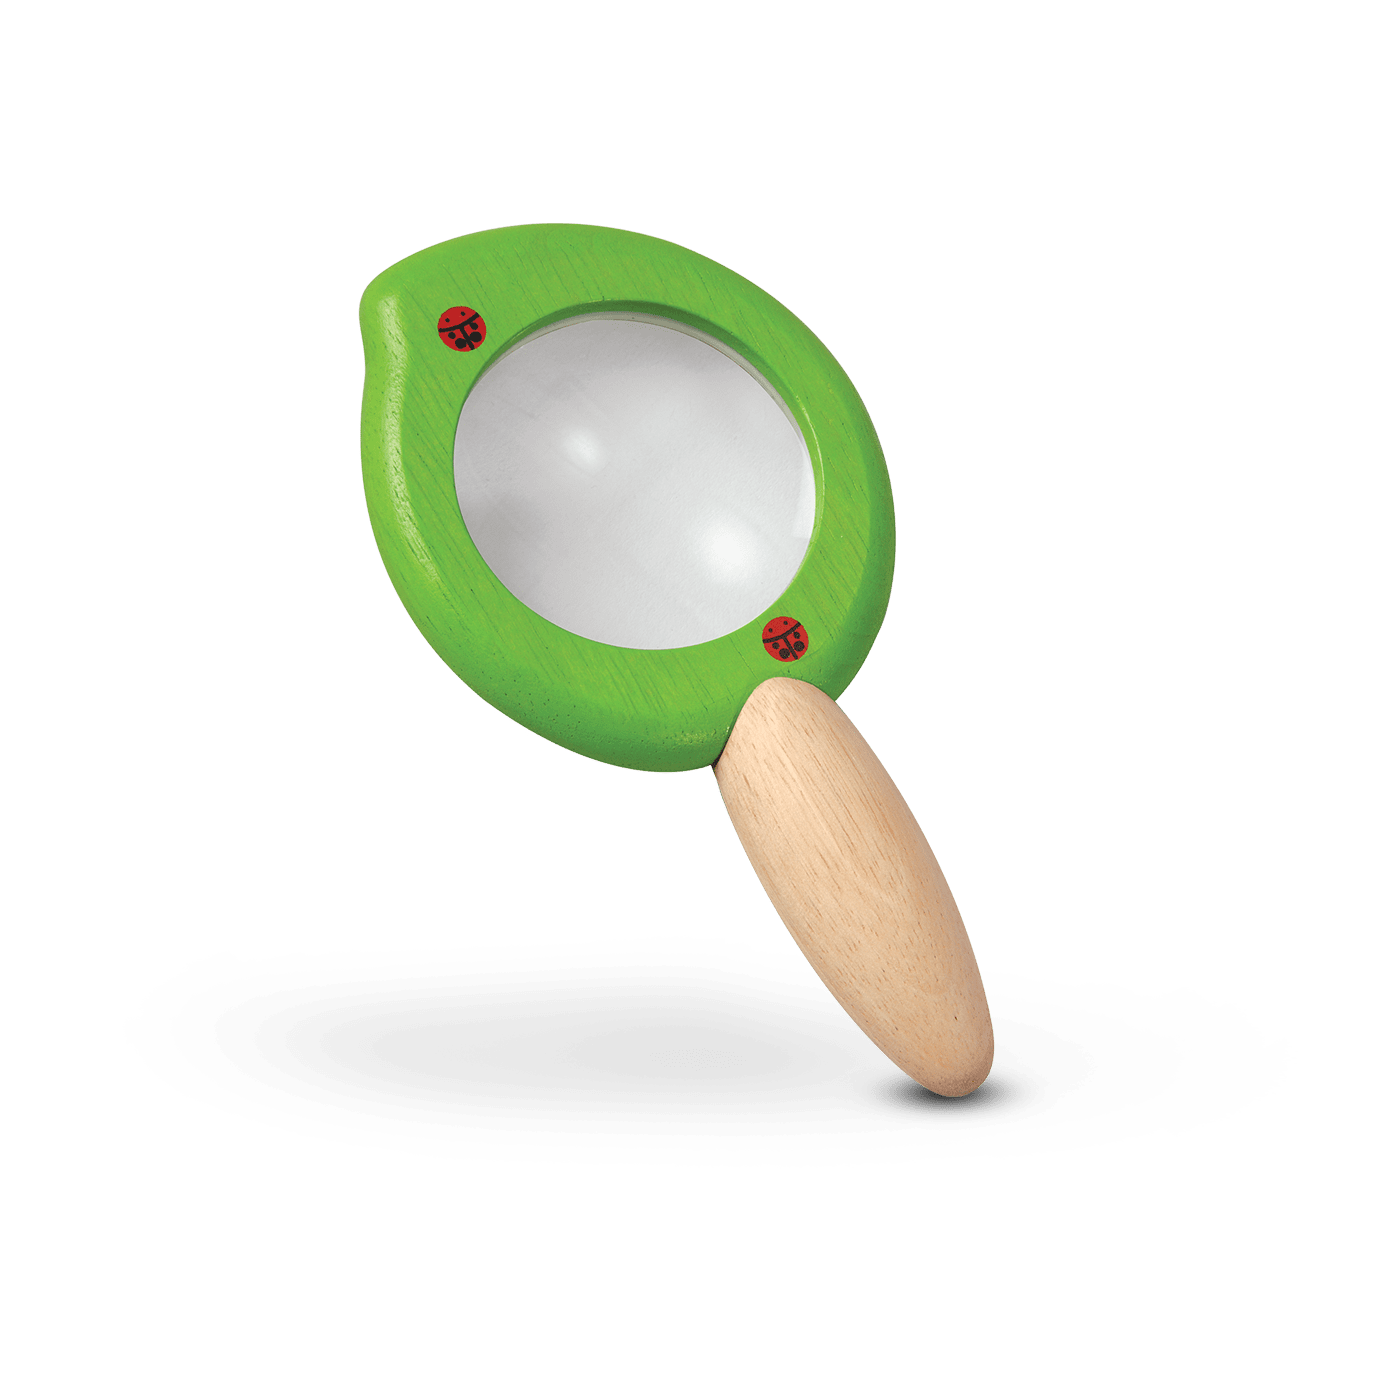 4346_PlanToys_LEAF_MAGNIFIER_Learning_and_Education_Explore_Visual_Concentration_18m_Wooden_toys_Education_toys_Safety_Toys_Non-toxic_0.png